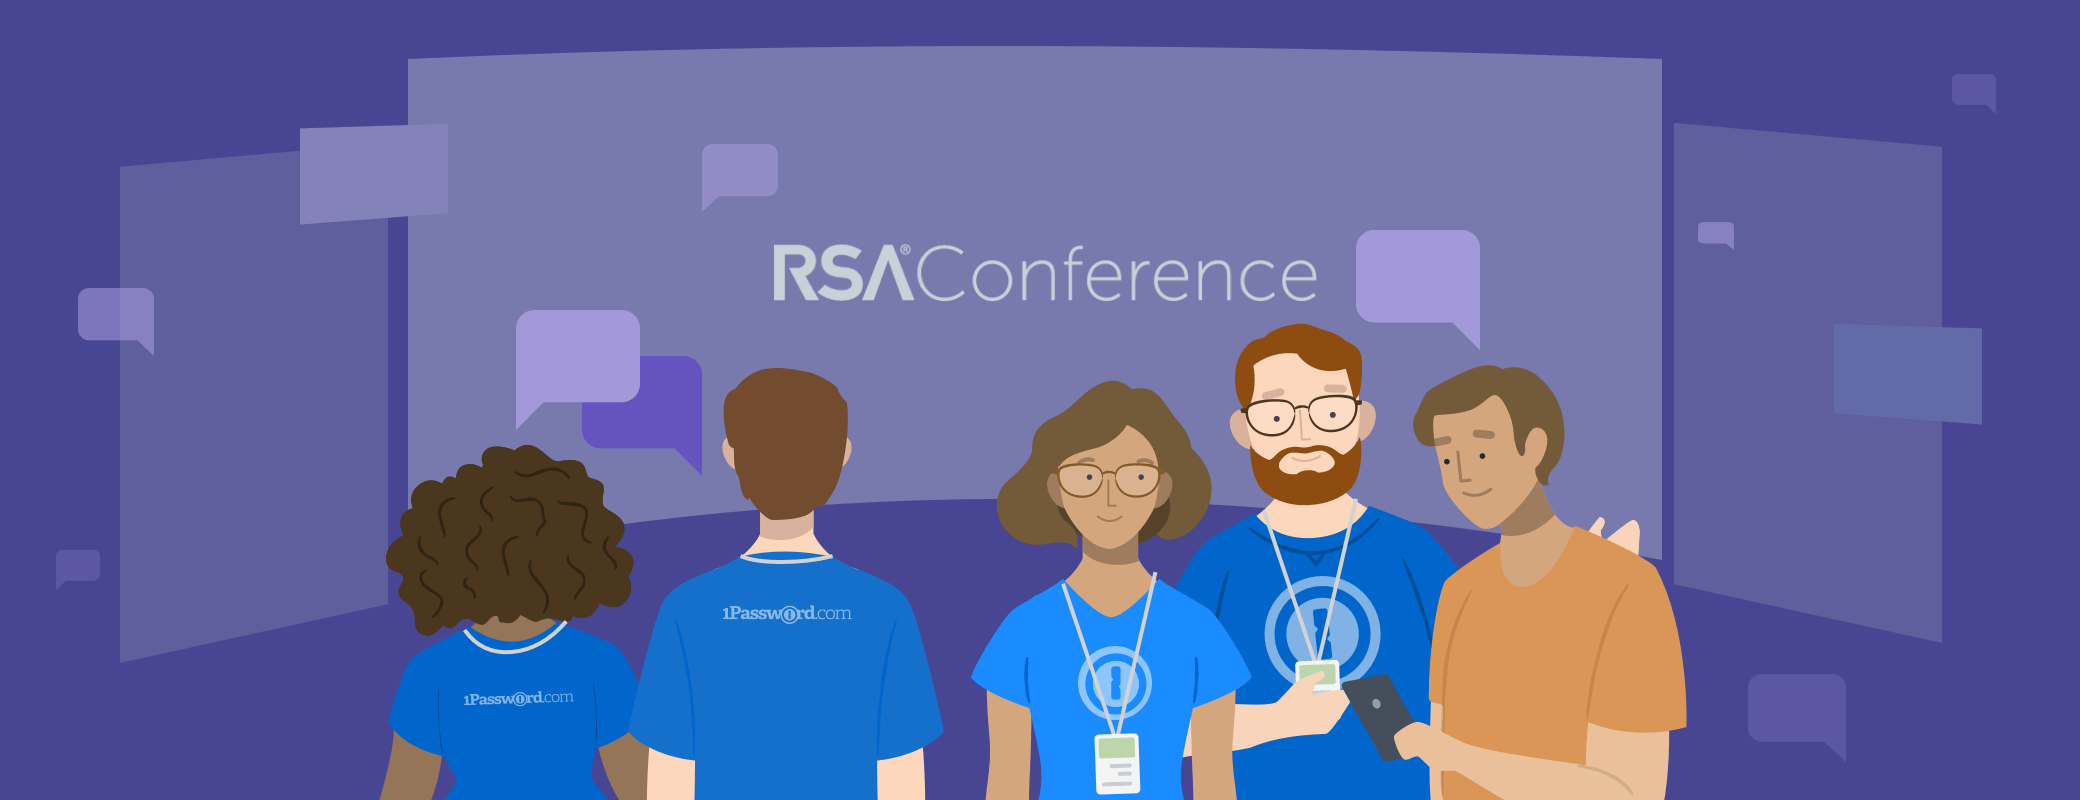 Come find us at RSA Conference 2019